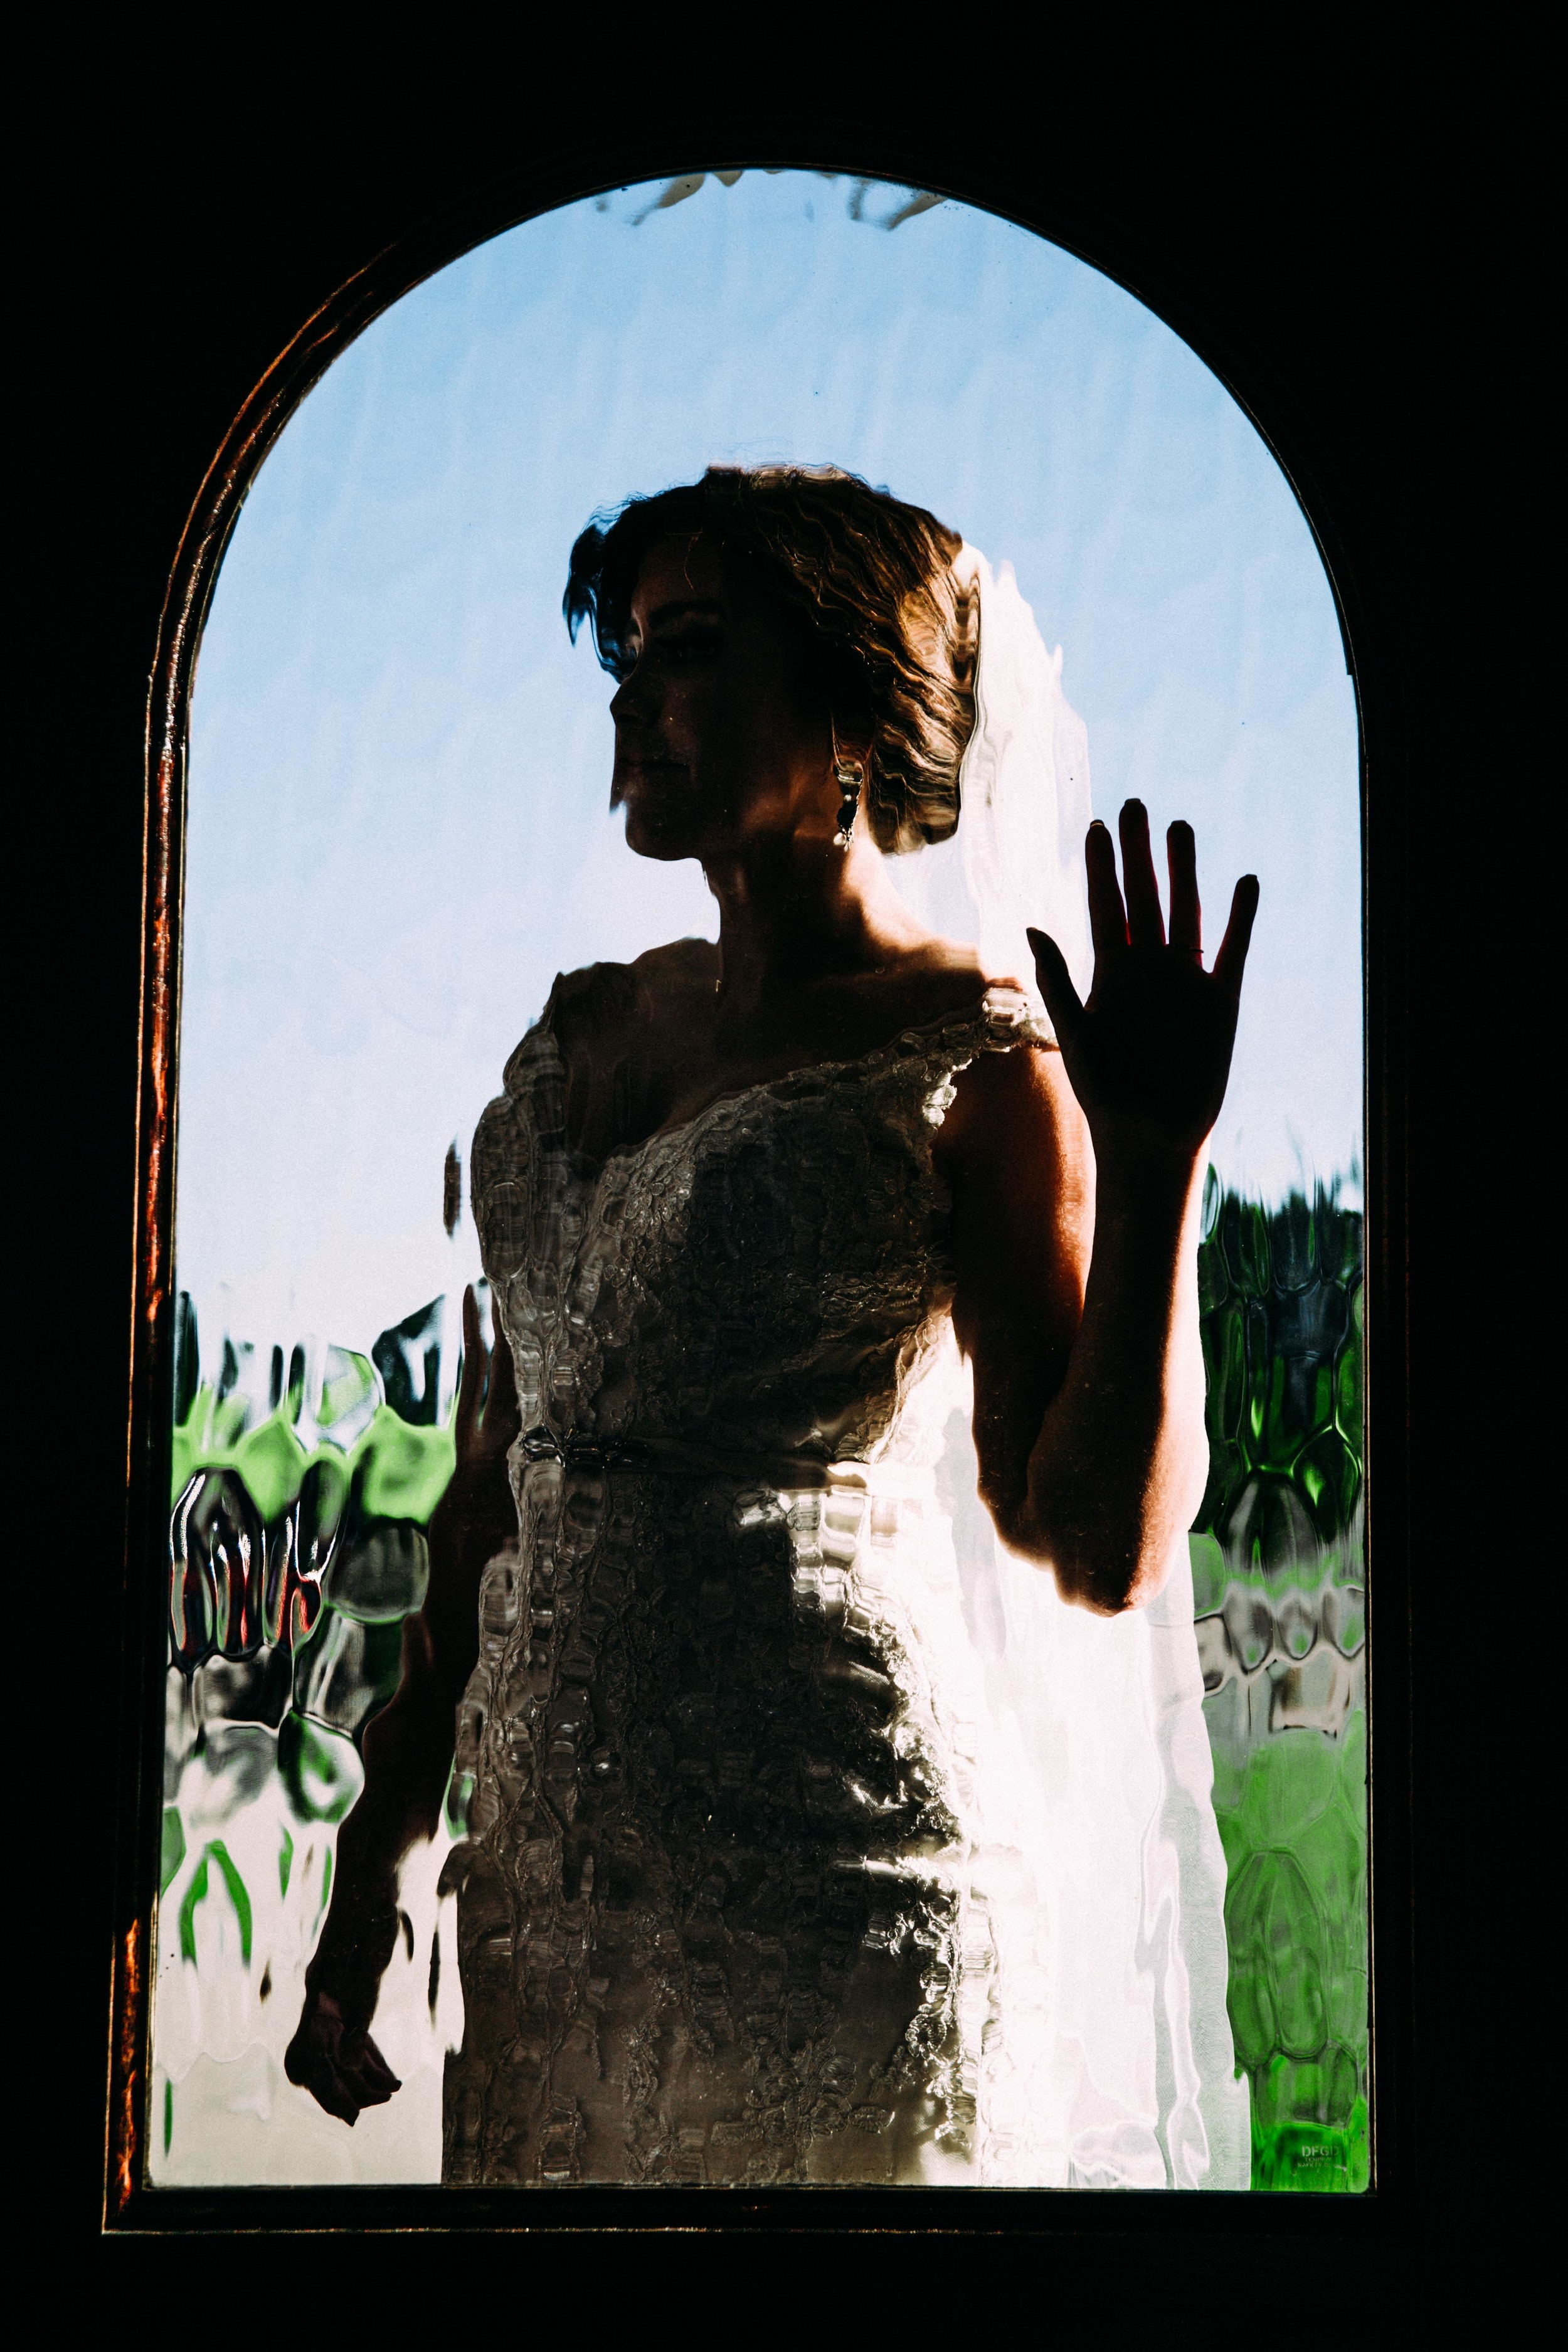 This shot turned into what is my new favorite bridal image of all time! I love silhouette images, and the textured from the glass door makes the photograph almost look like a painting!